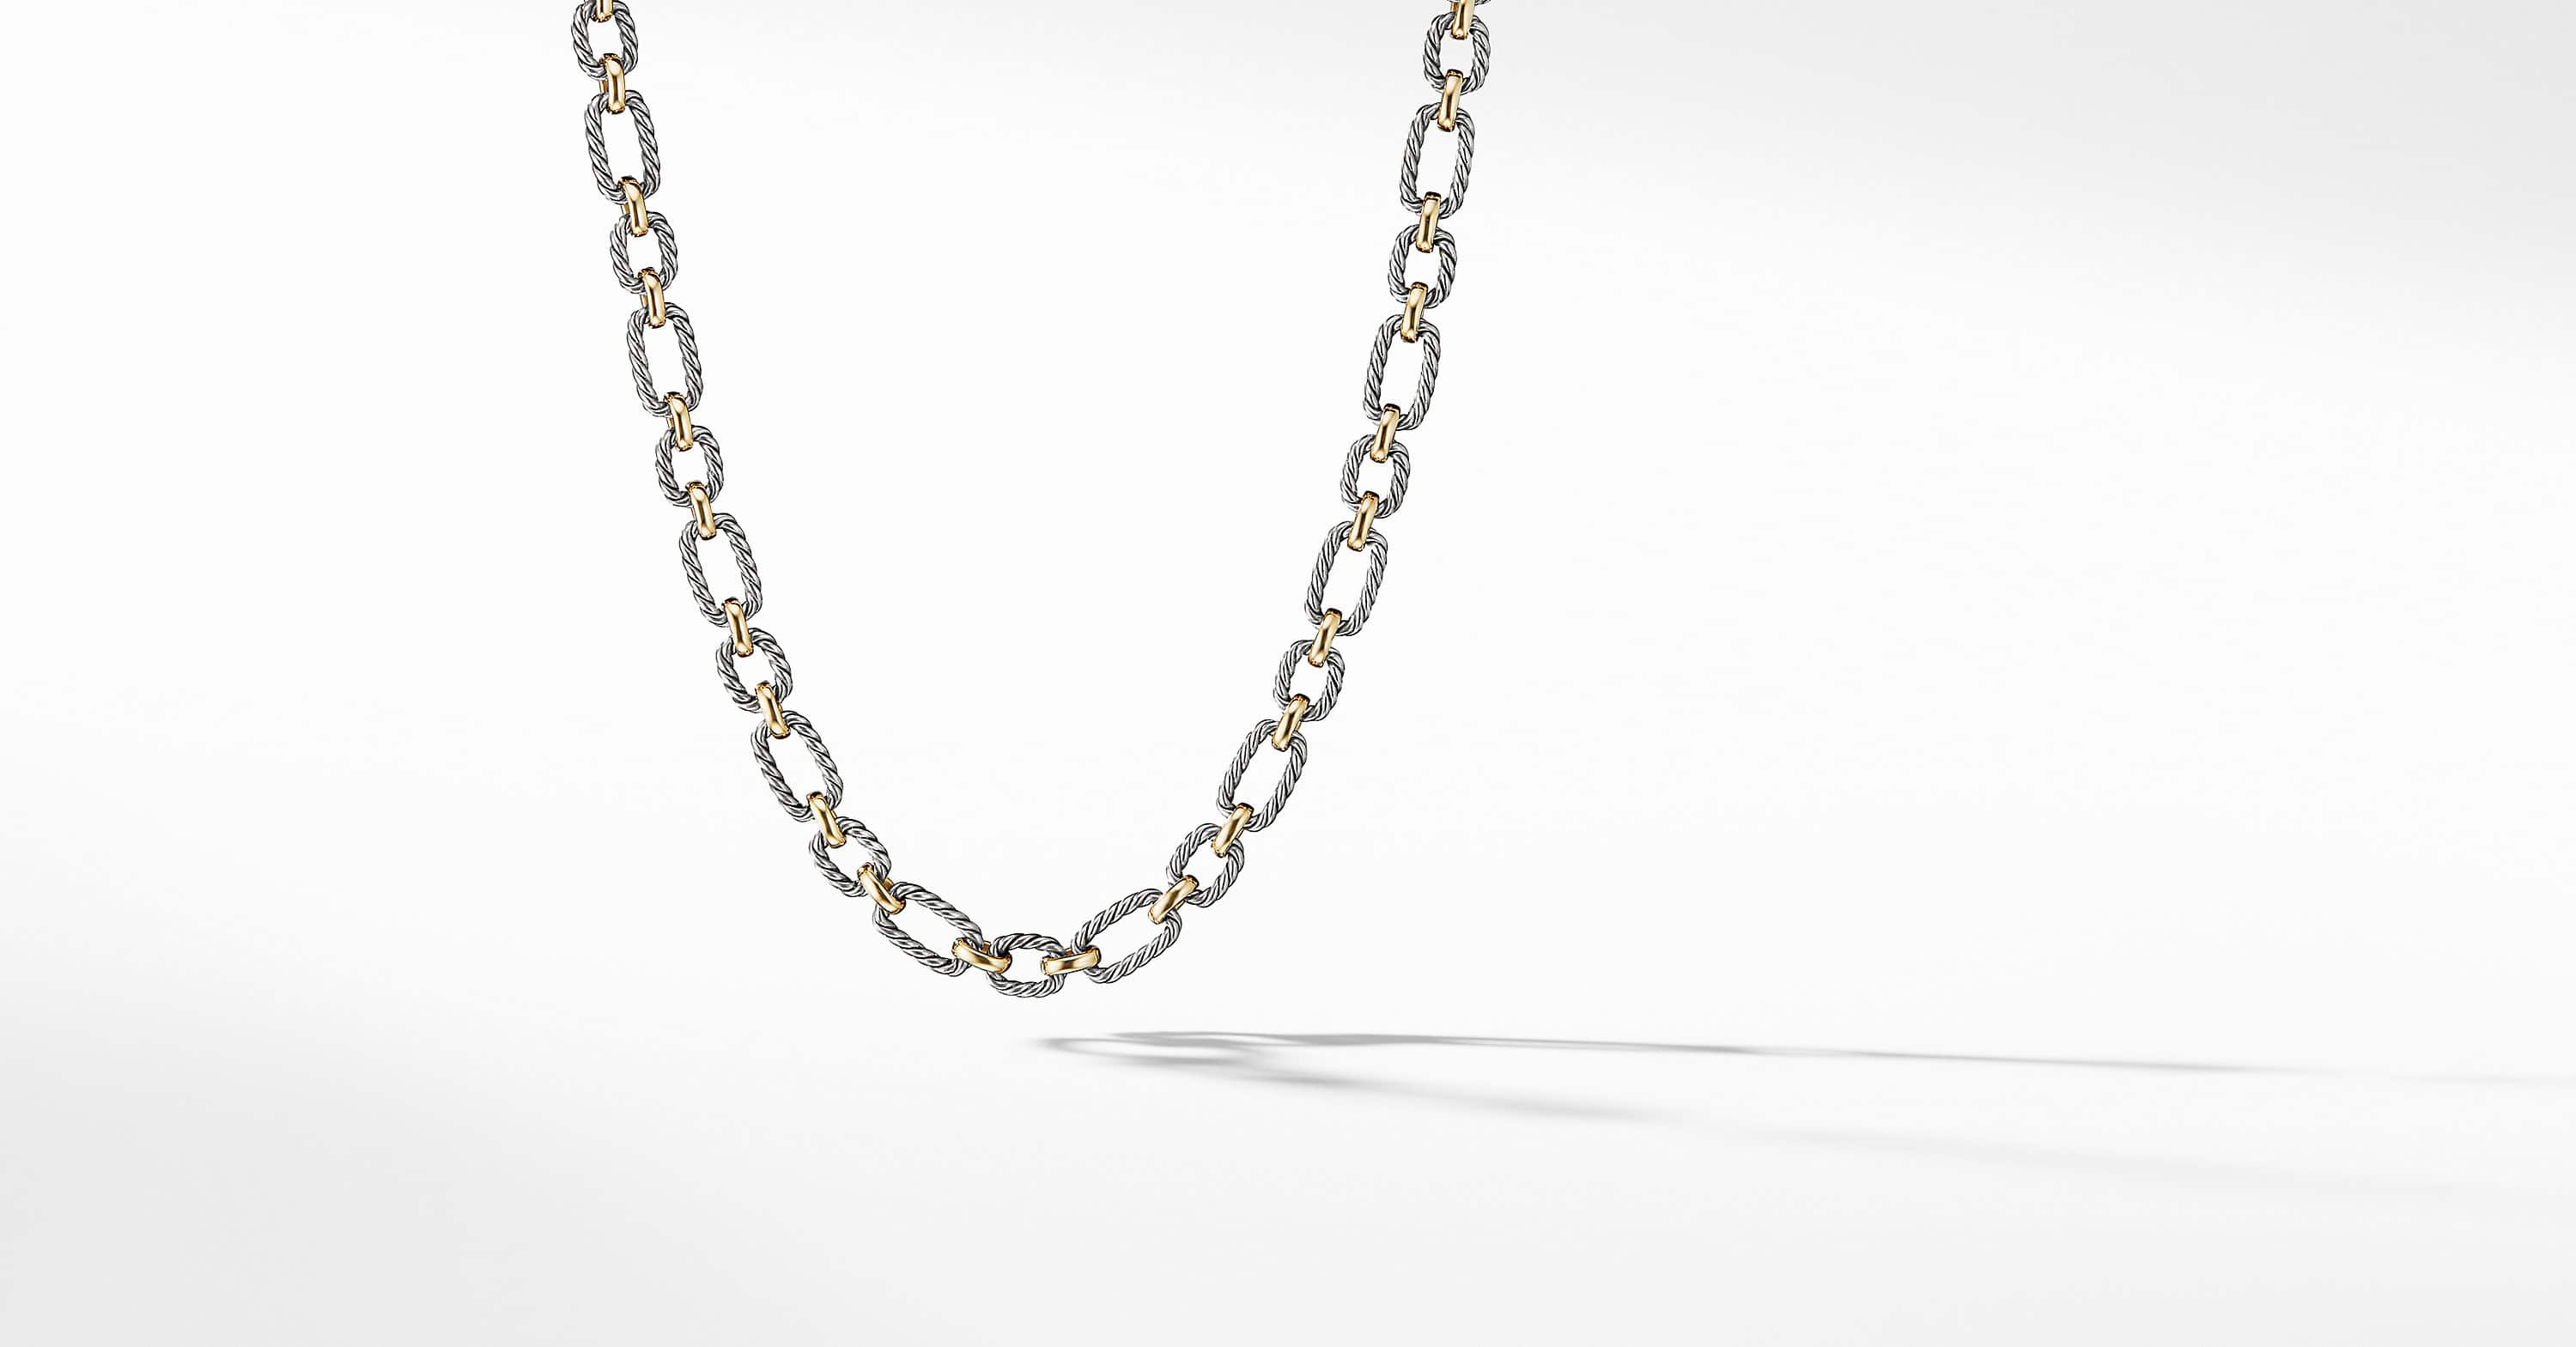 Cushion Link Necklace with 18K Gold, 9.5mm